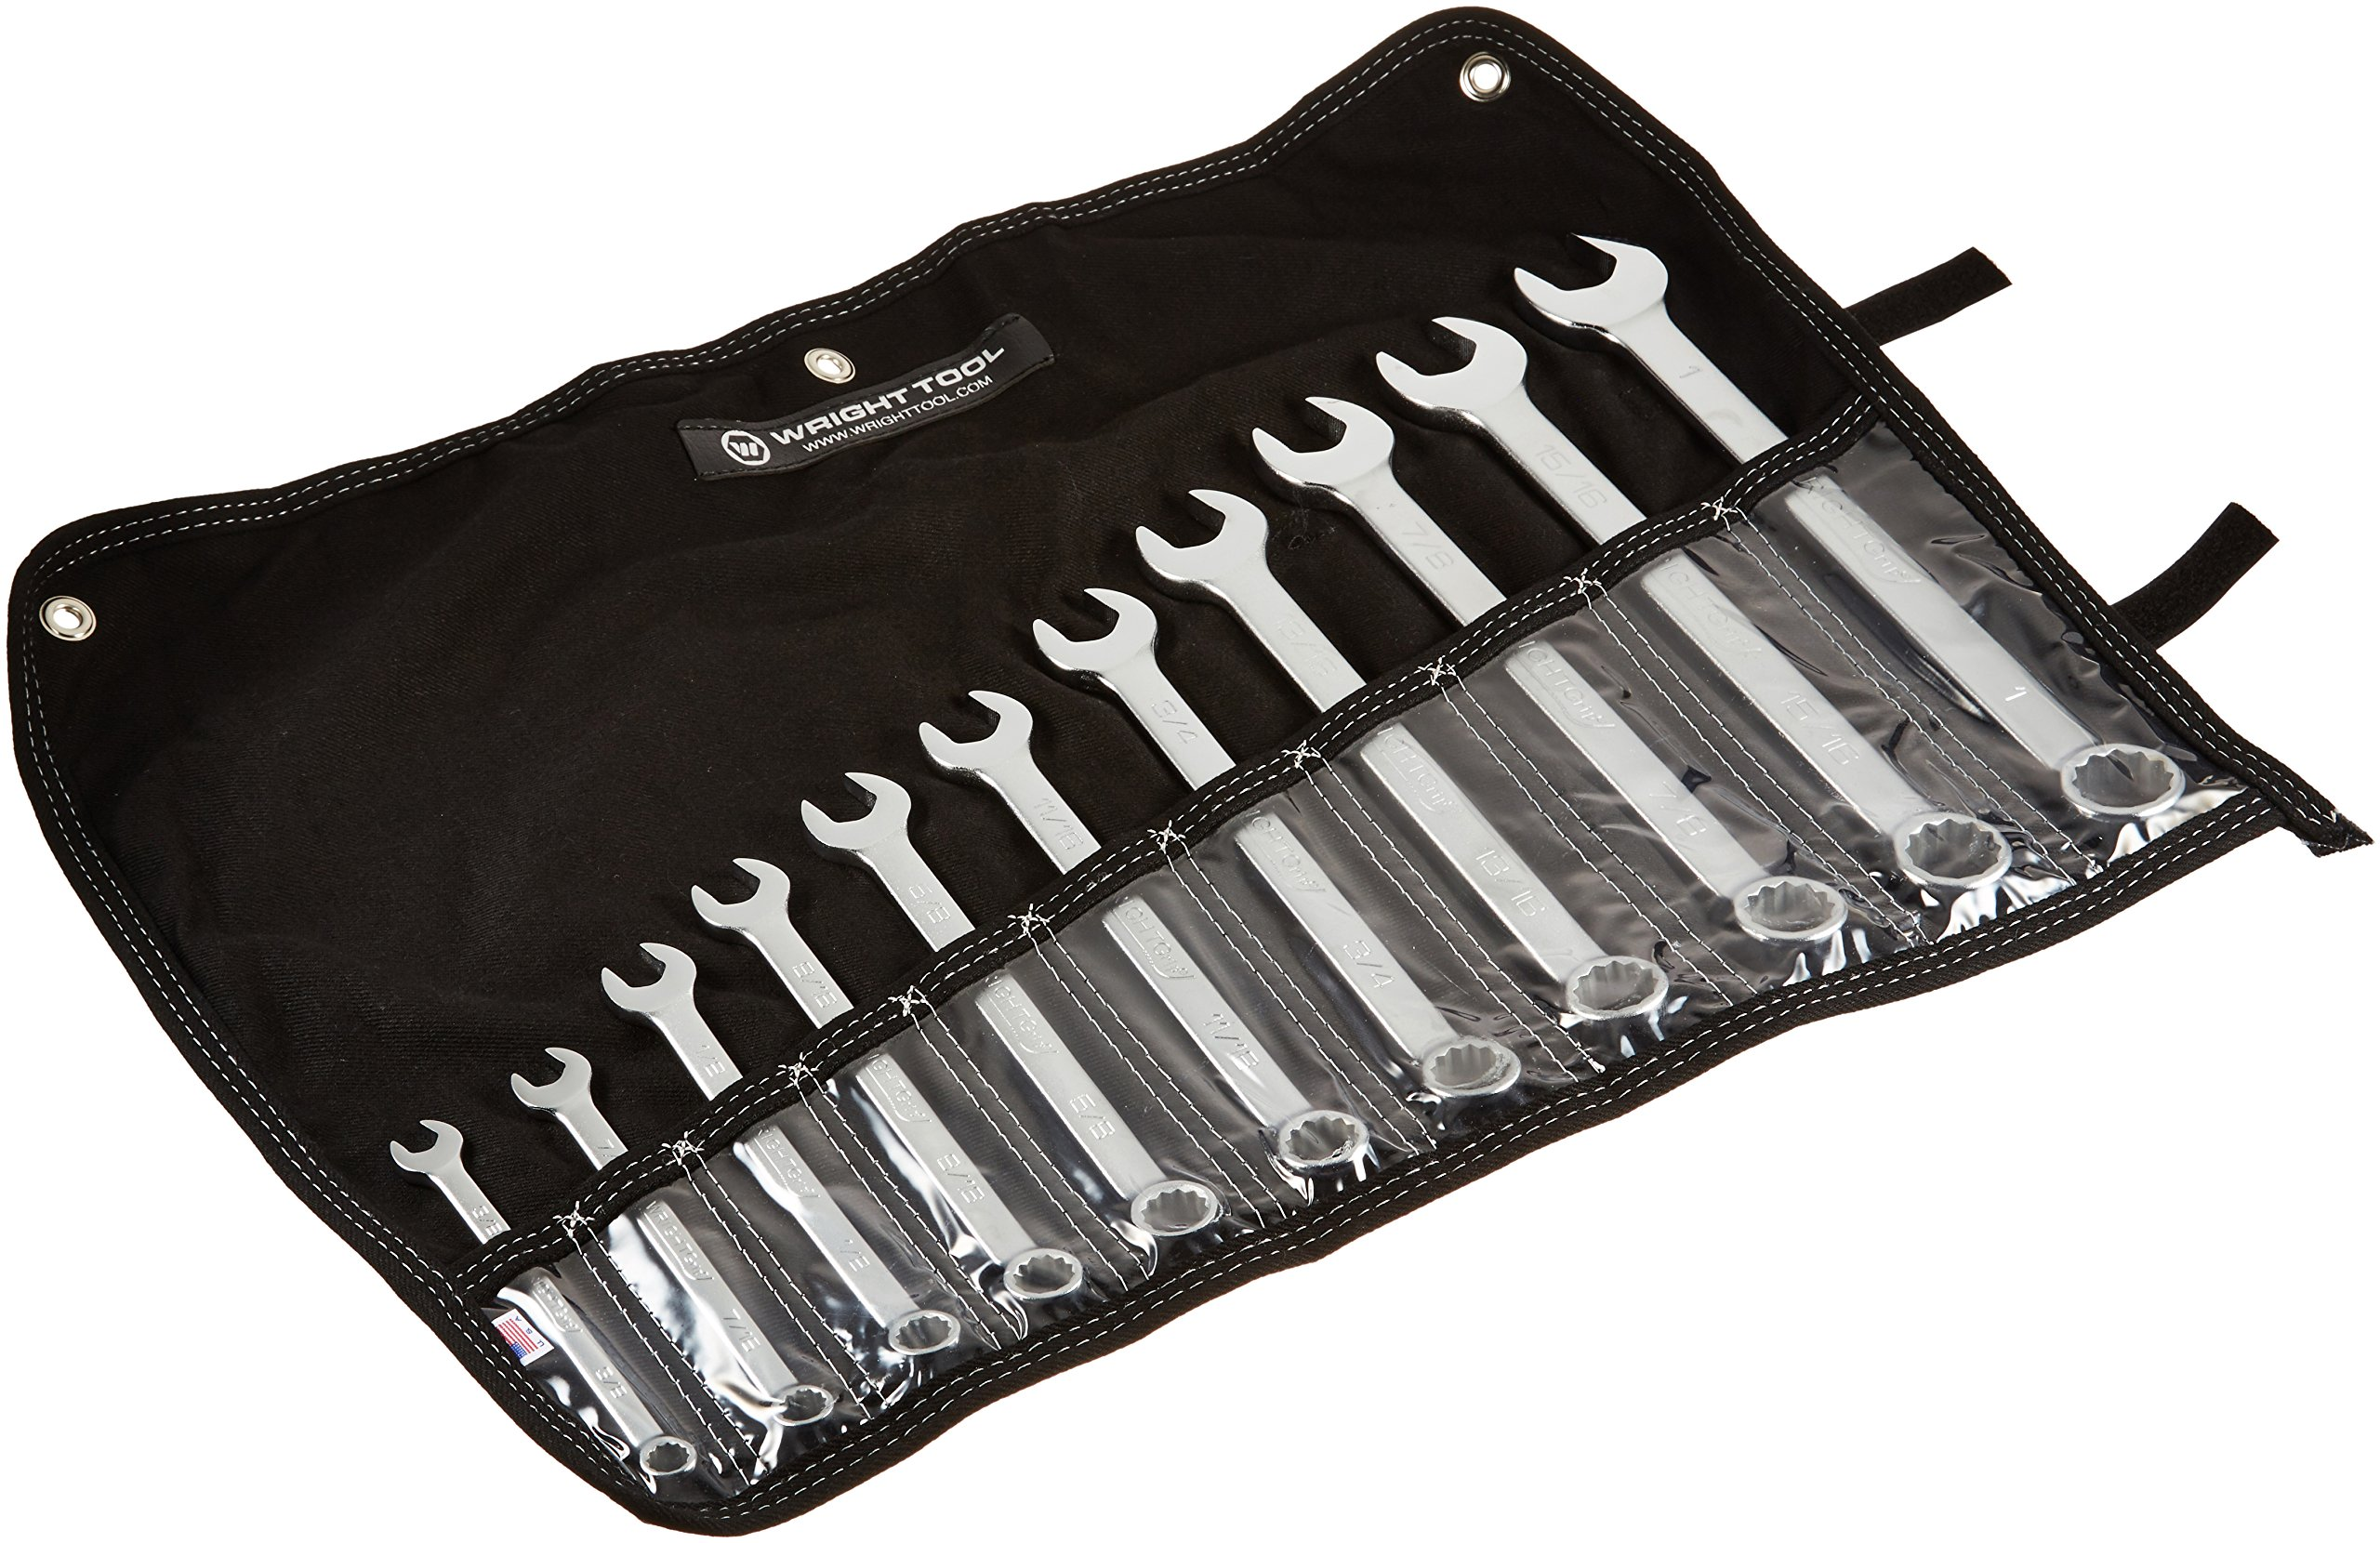 Wright Tool 711 Wrightgrip 12-Point Combination Wrench Set, 11-Piece